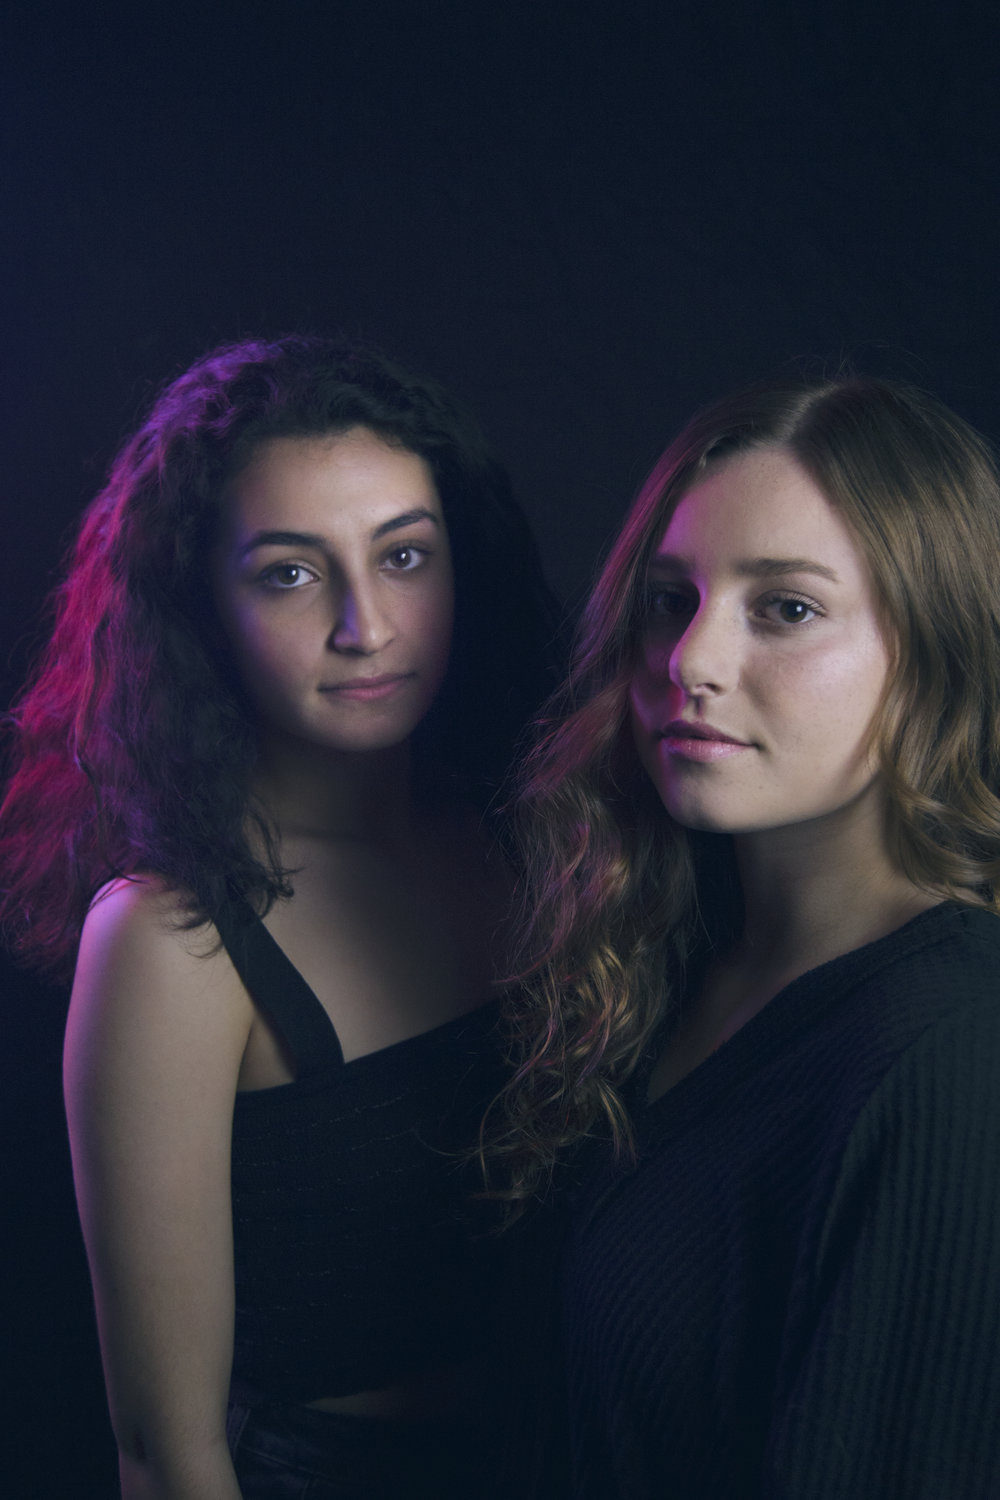 From left to right: Leela Brassil, Avery Somma